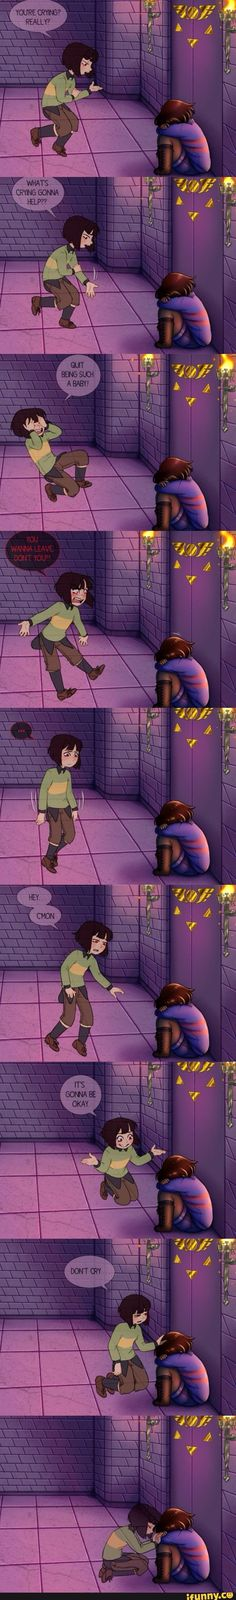 undertale, chara, frisk I imagine this happens if Frisk gains control during a genocide run, but only after Chara has already killed everyone Frisk knows and loves